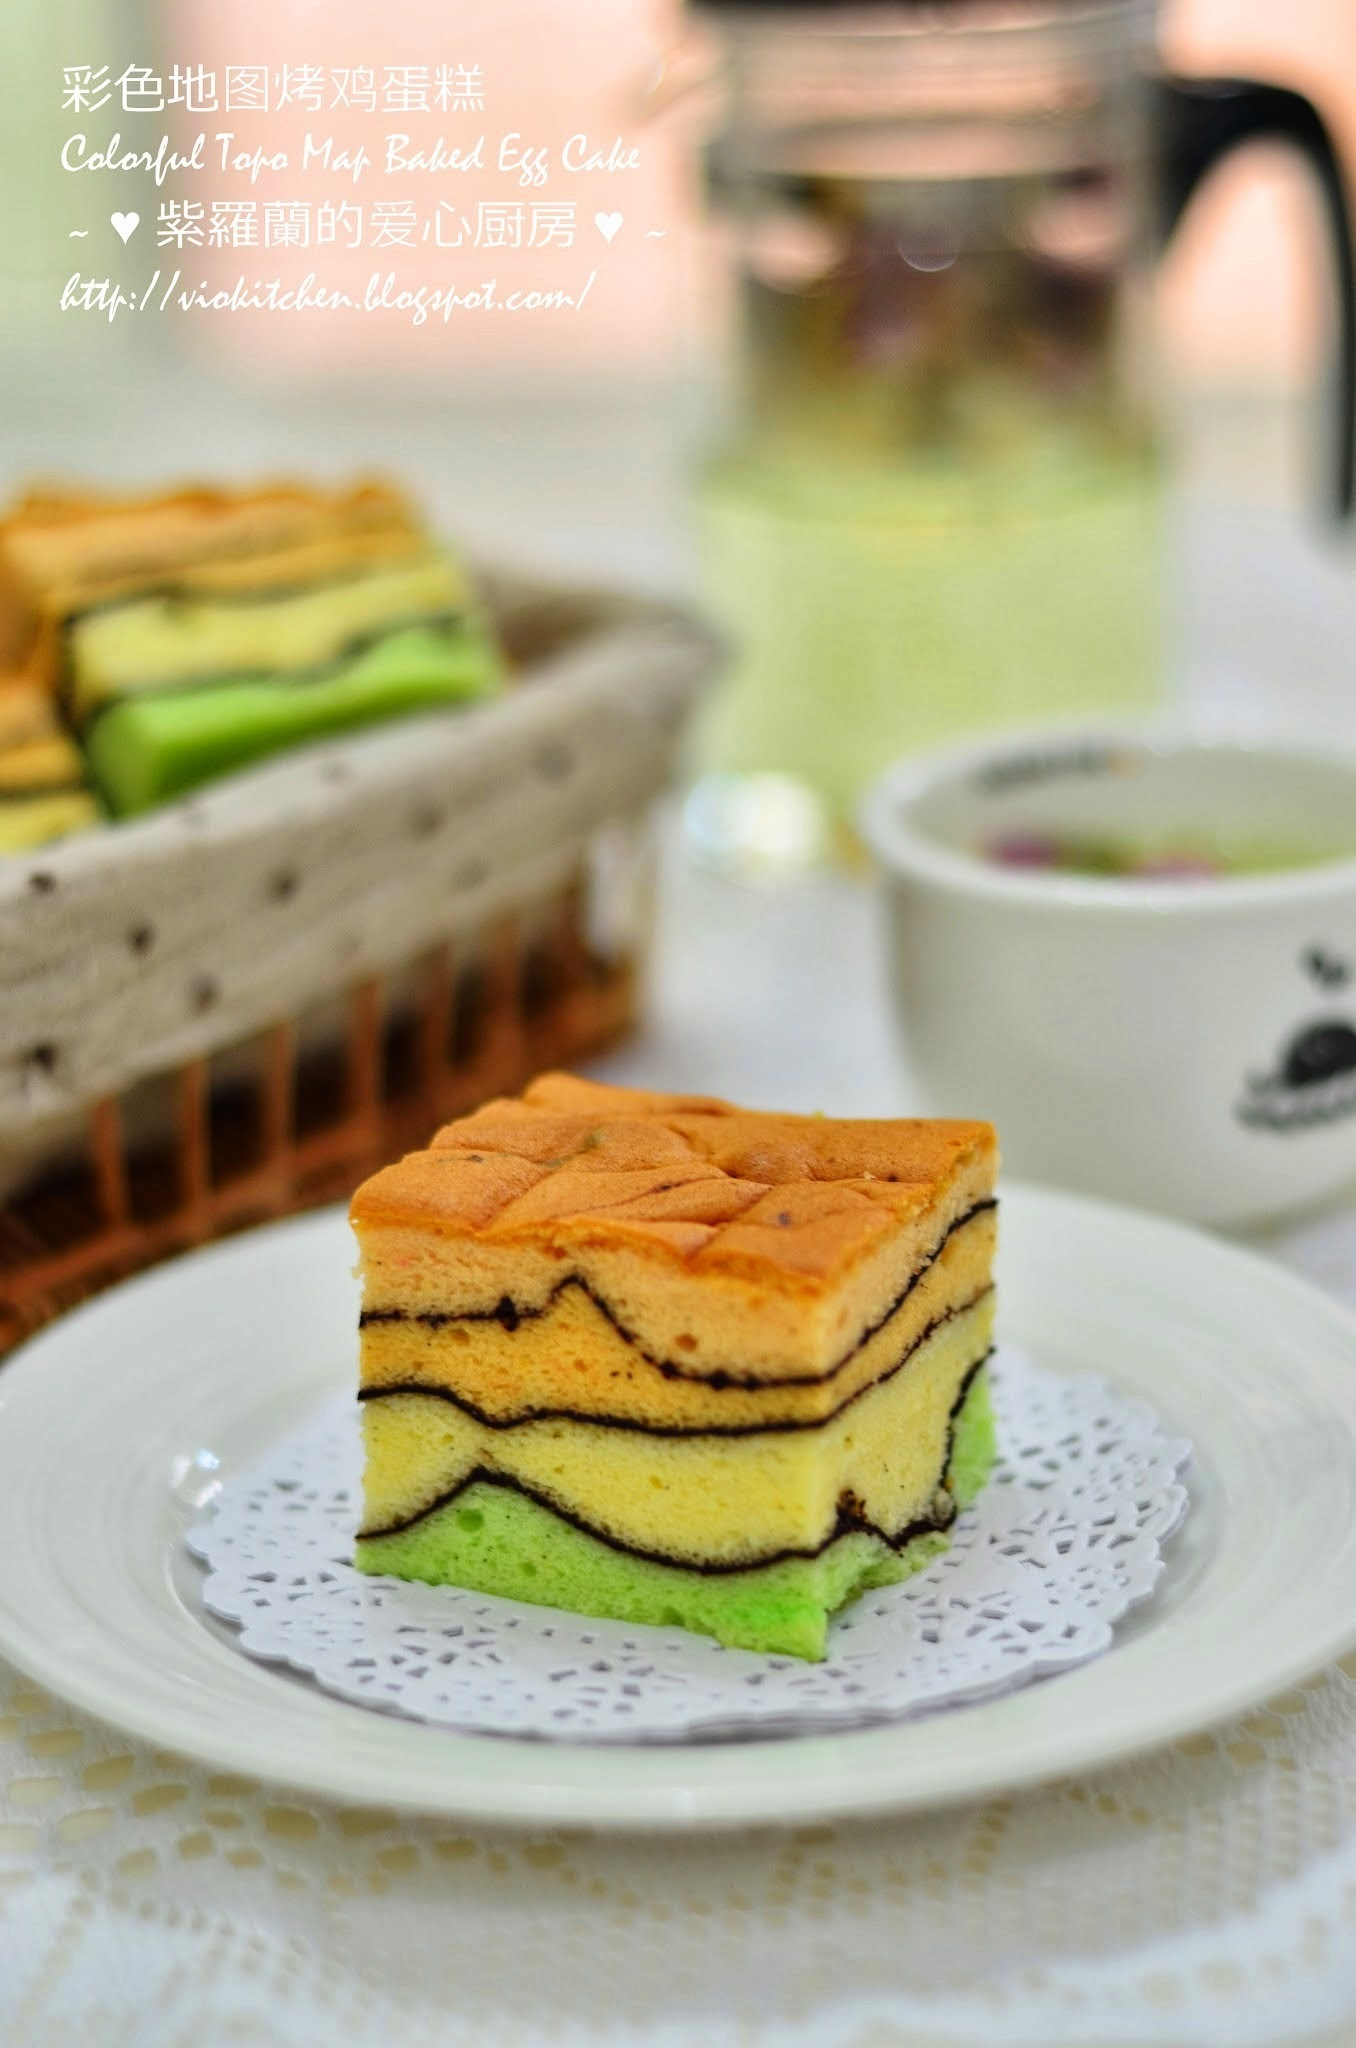 彩色地图烤鸡蛋糕 Colorful Topo Map Baked Egg Cake